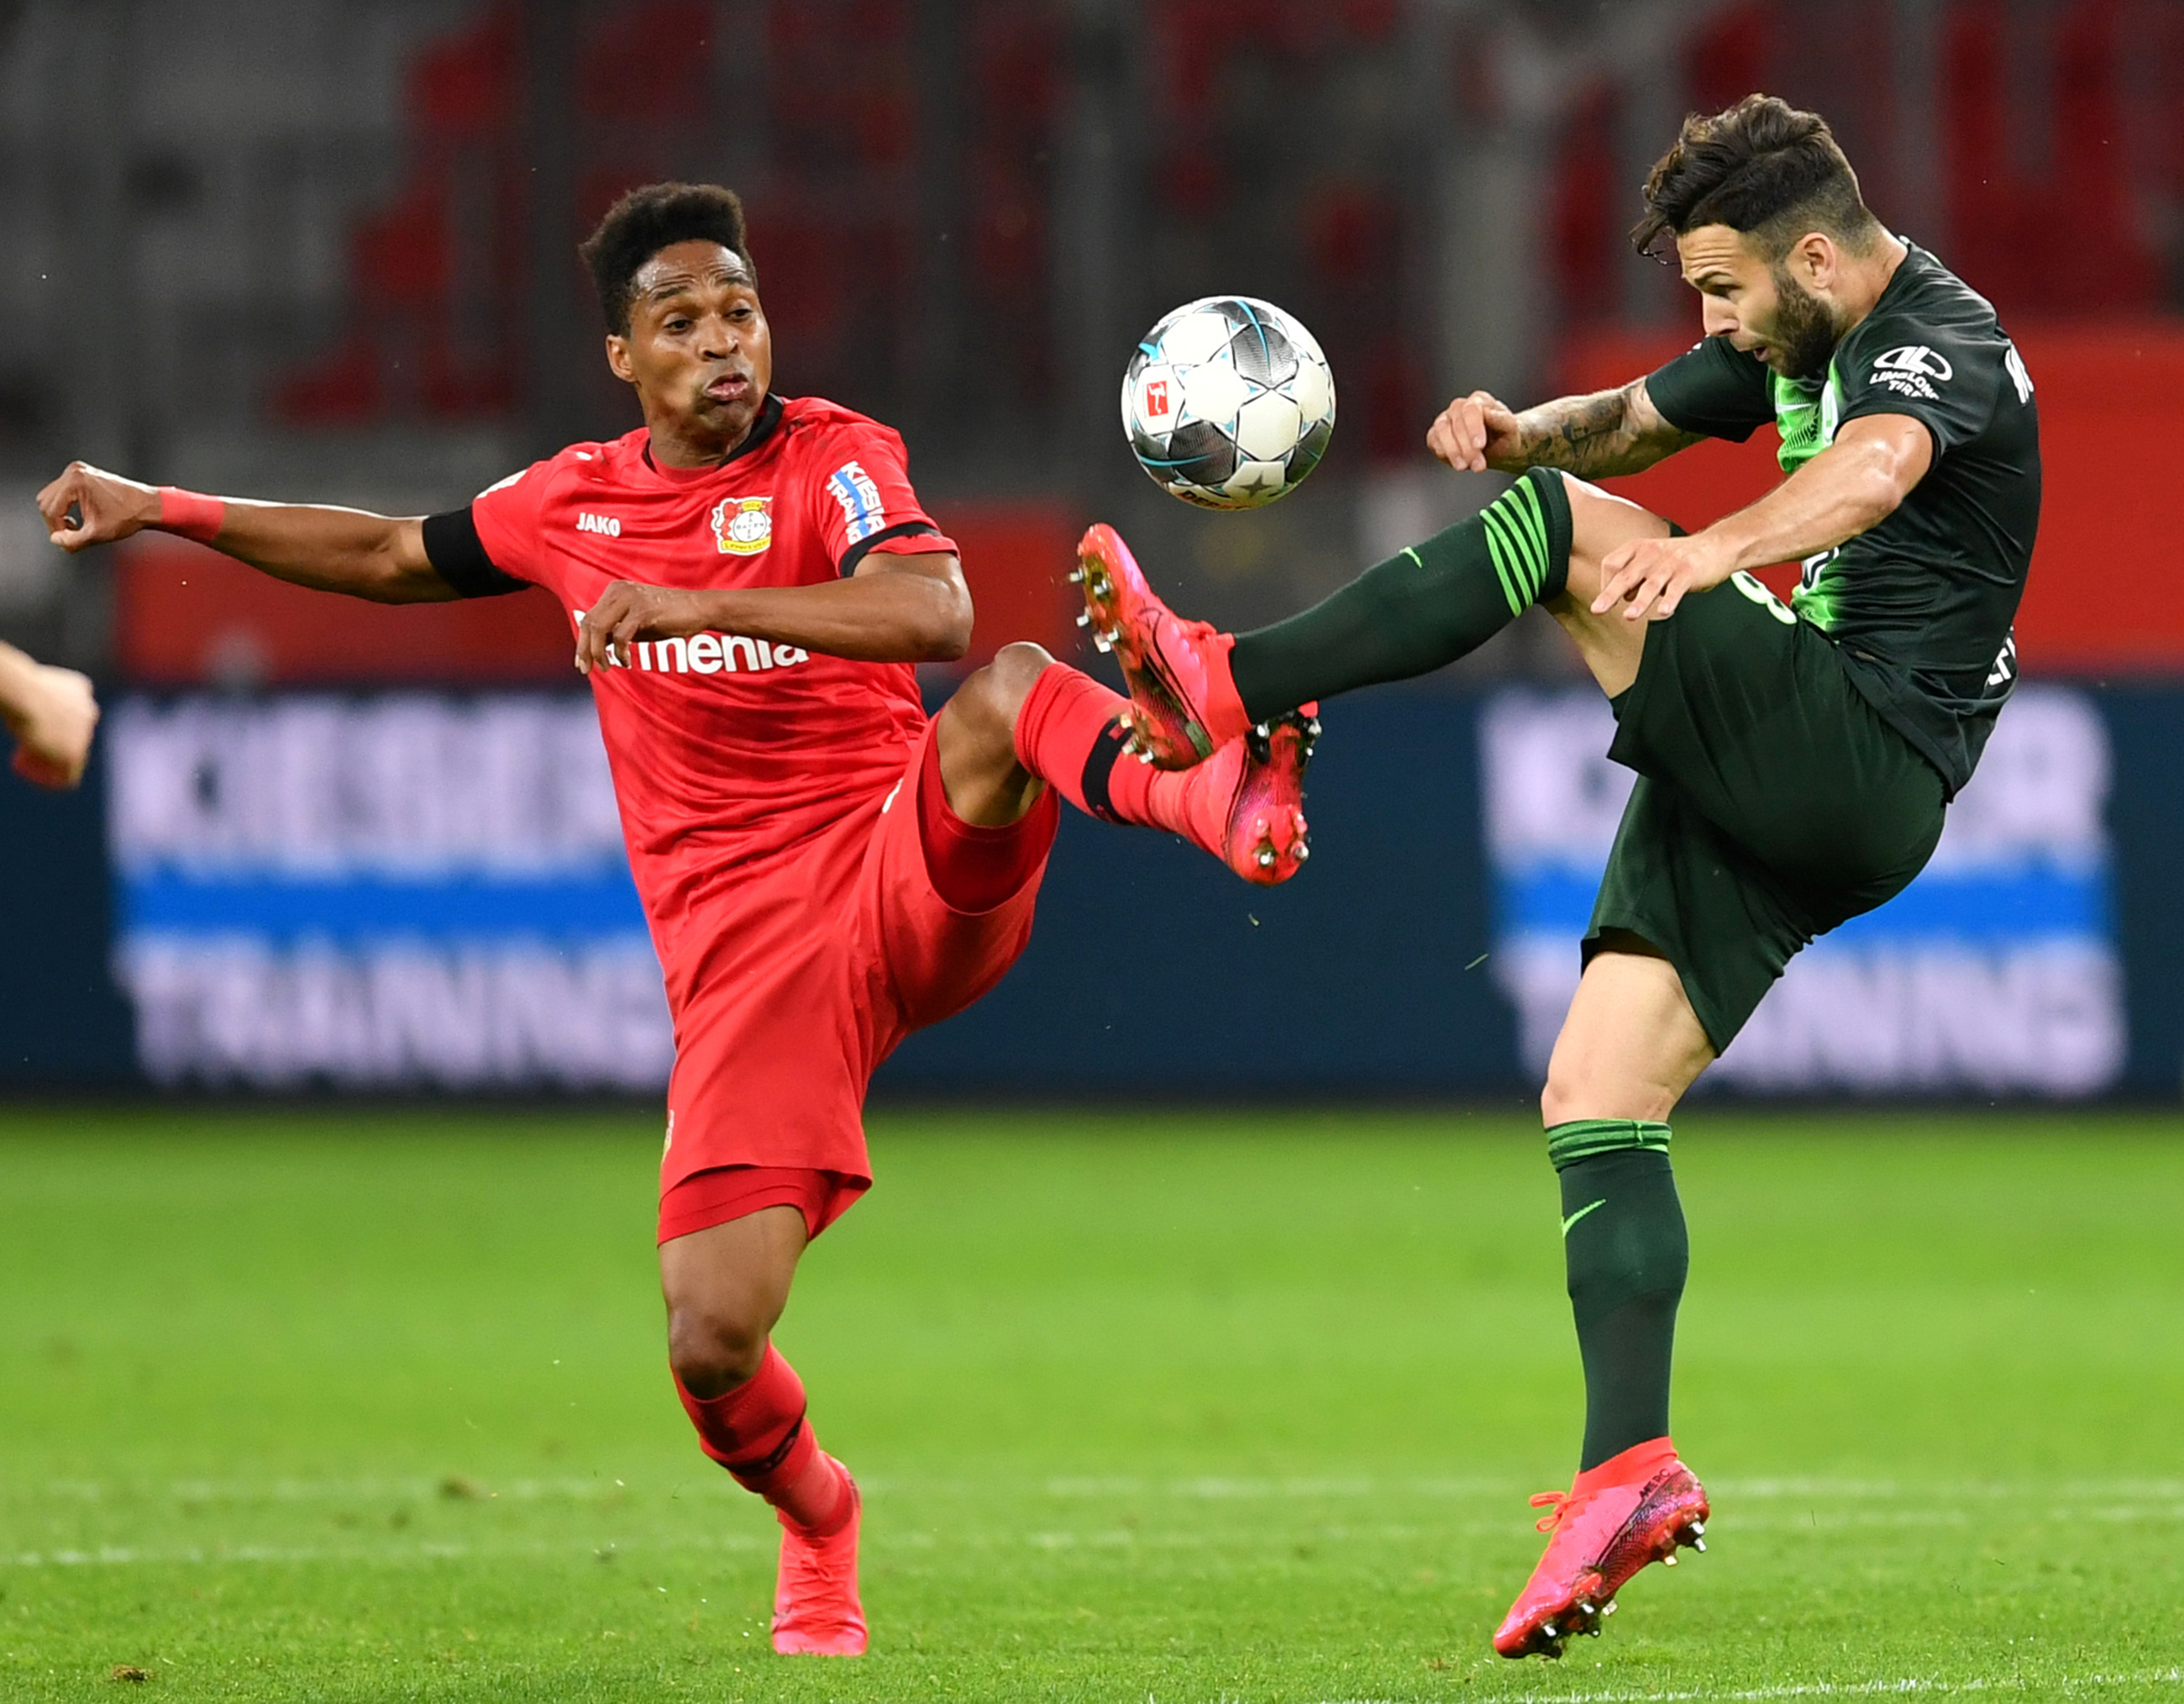 Bayer Leverkusen's Wendell in action with VfL Wolfsburg's Renato Steffen, as play resumes behind closed doors following the outbreak of the coronavirus disease (COVID-19) during the  Bundesliga match between Bayer Leverkusen and VfL Wolfsburg, at BayArena, Leverkusen, Germany, on May 26, 2020. Photo: Marius Becker/Pool via Reuters